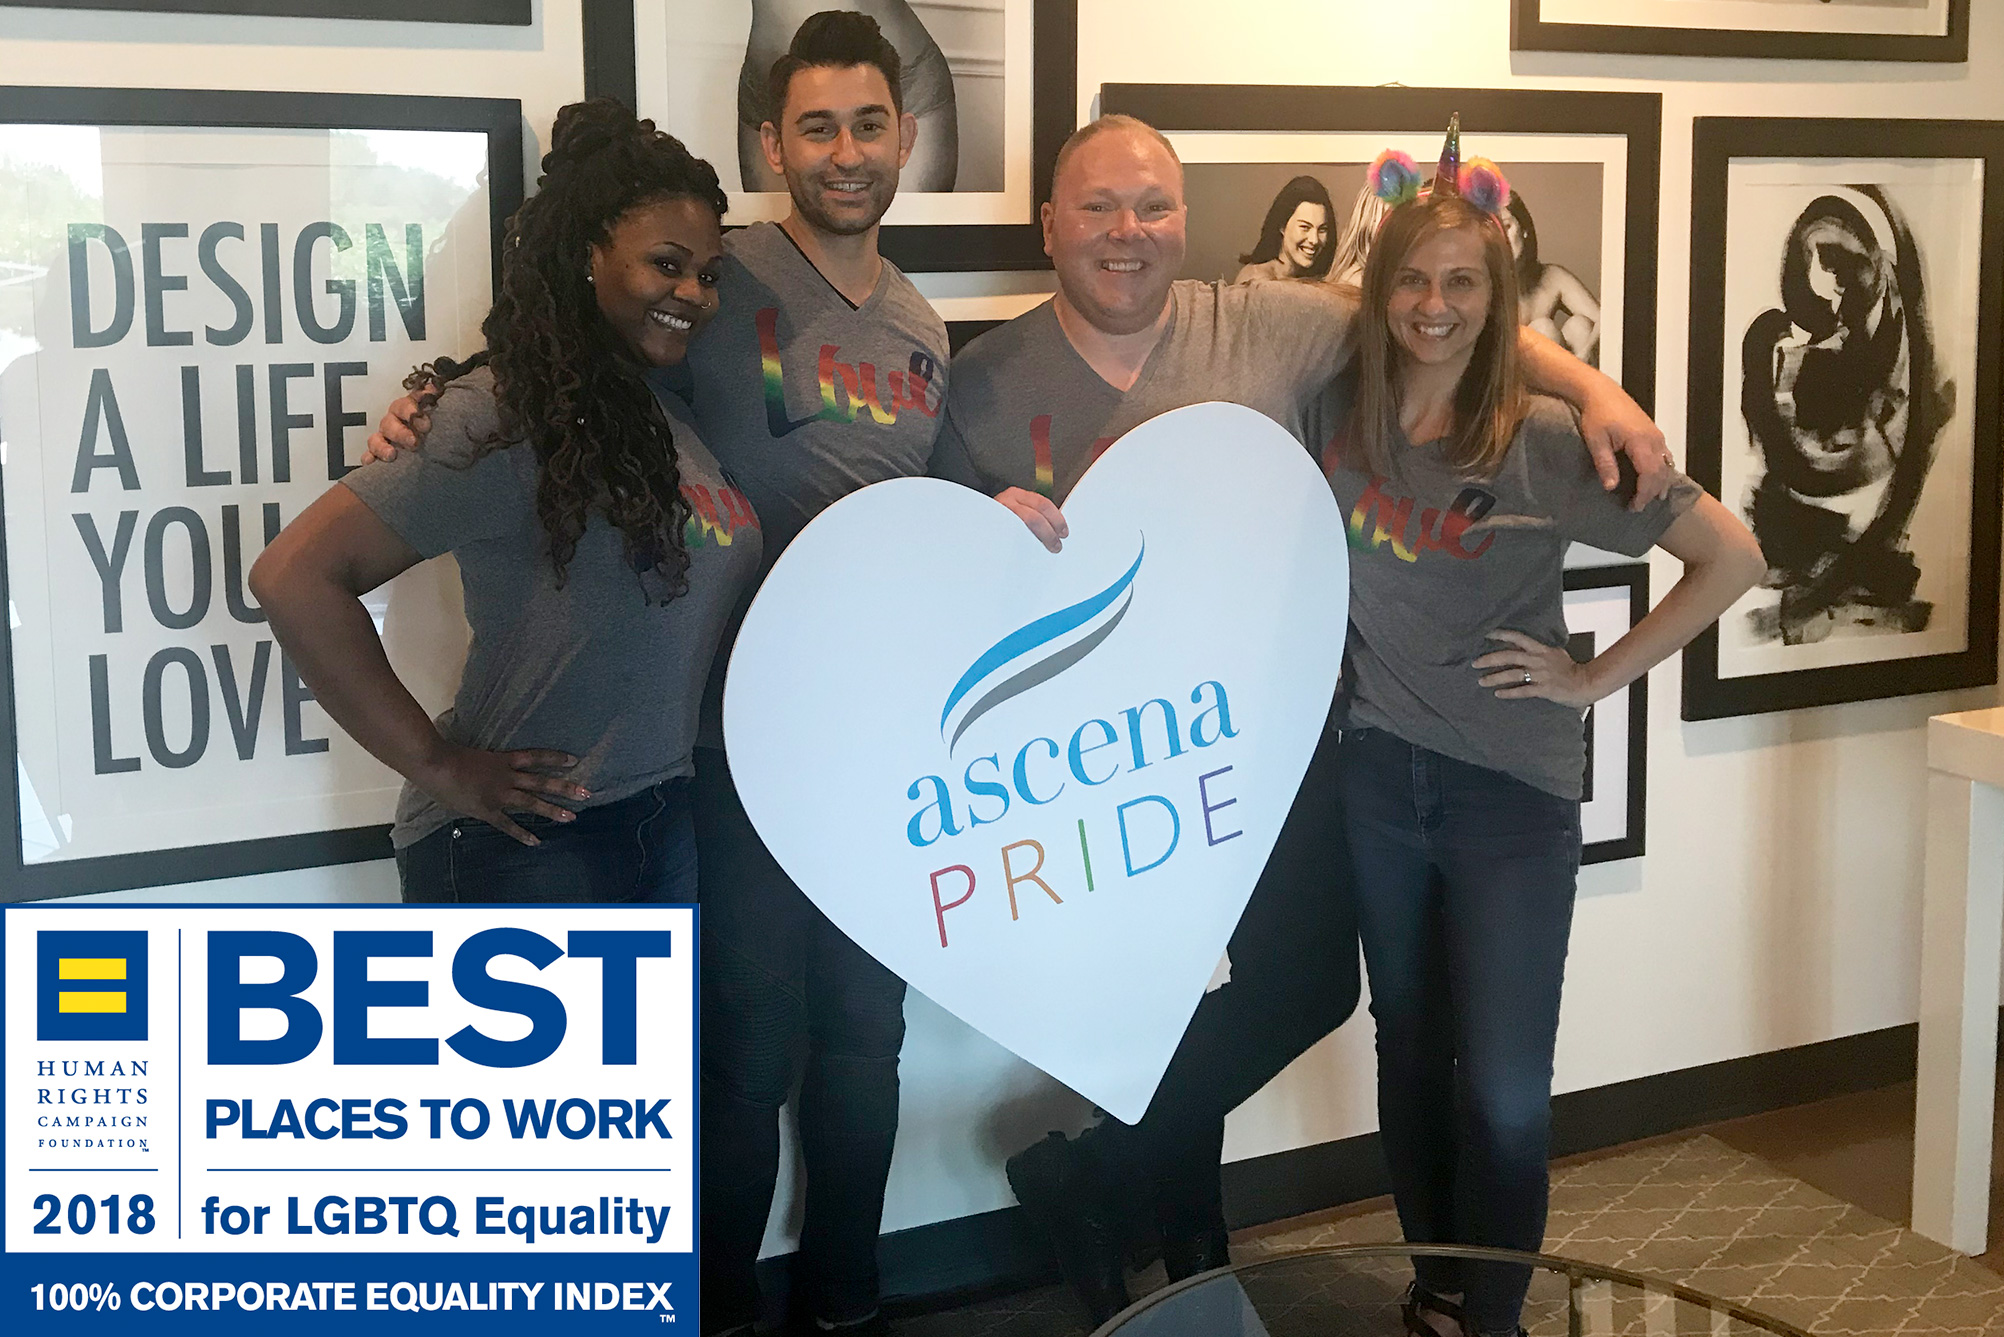 BEST Places to Work for LGBTQ